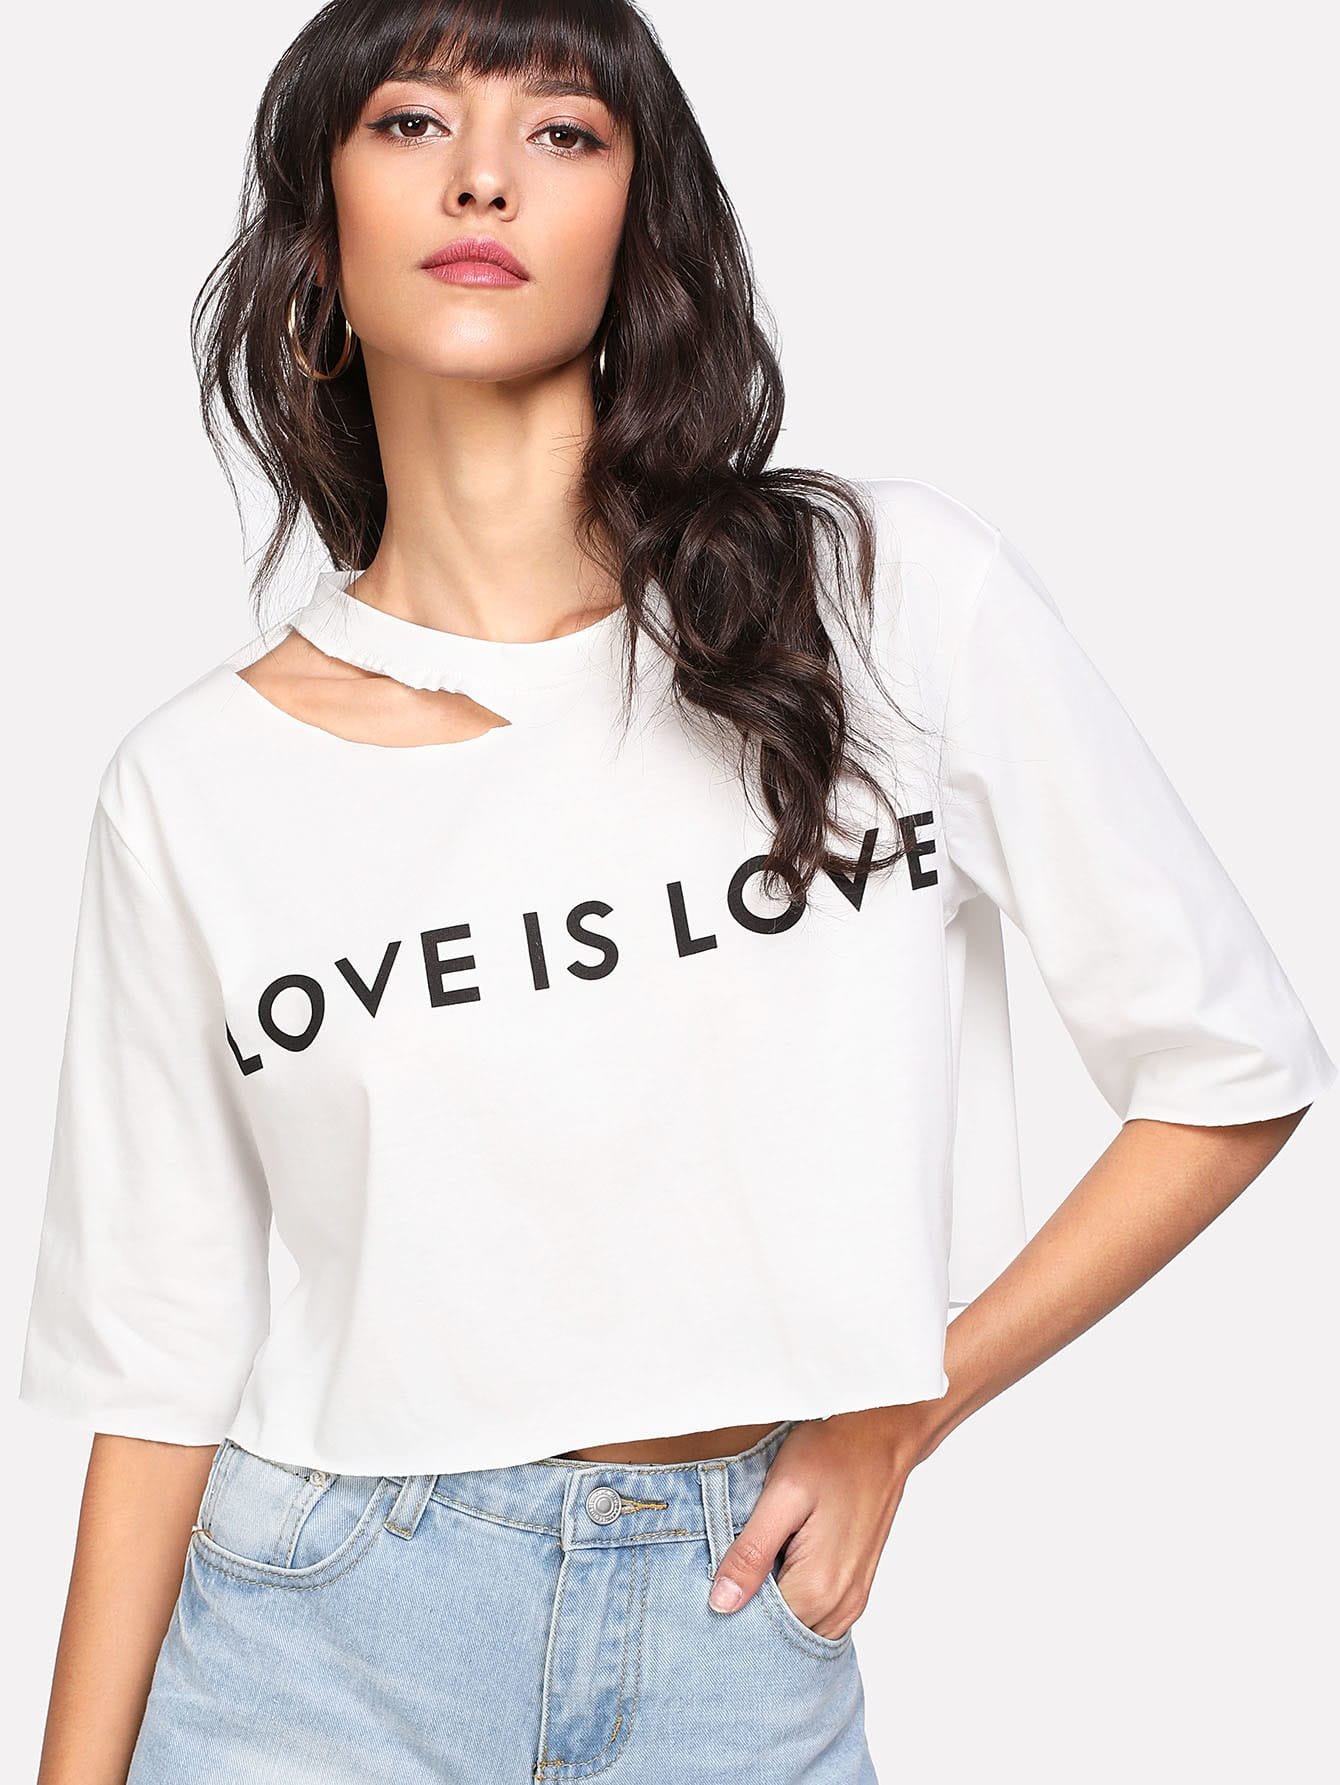 Letter Print Asymmetric Cutout Neck T-shirt grey eyelashes and letter print t shirt